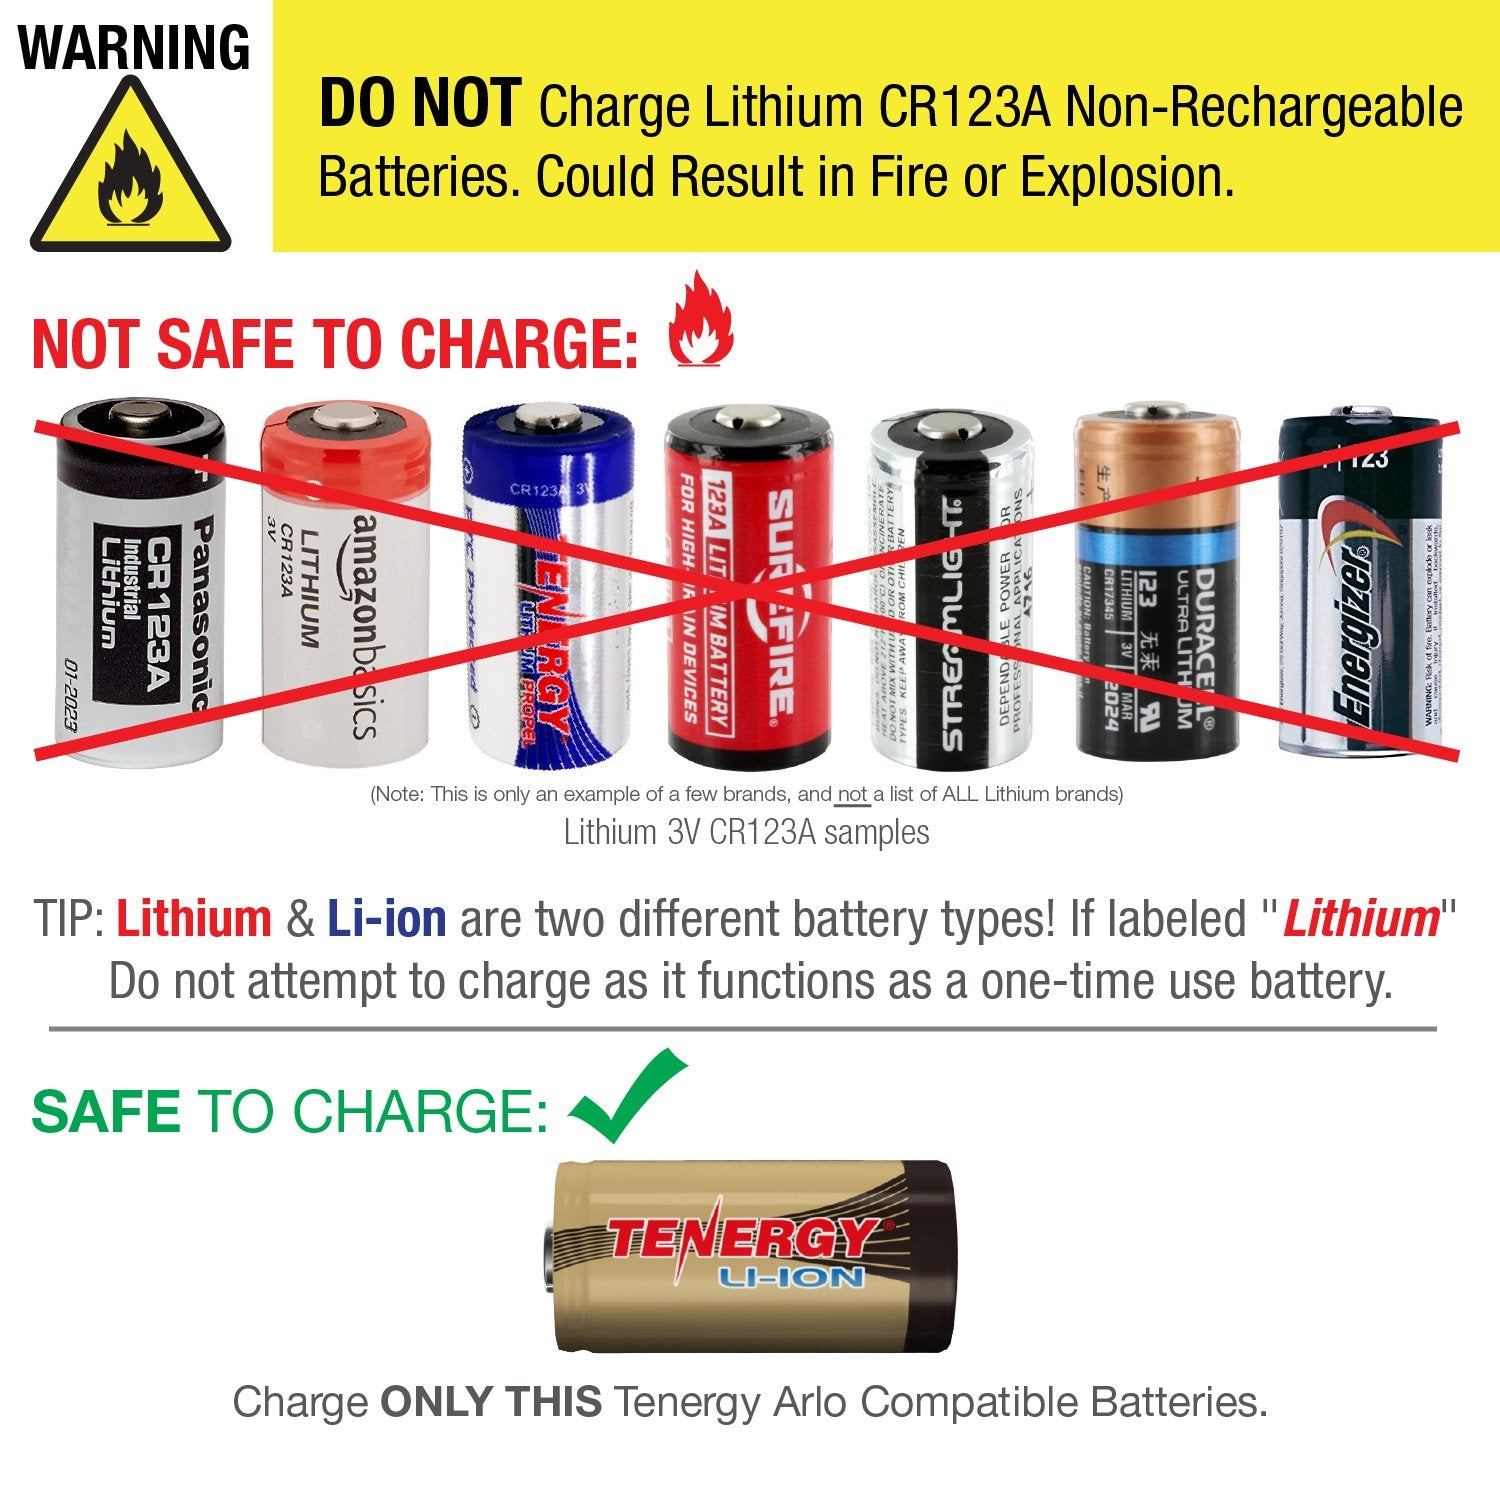 Tenergy - Arlo certified rechargeable batteries and charger